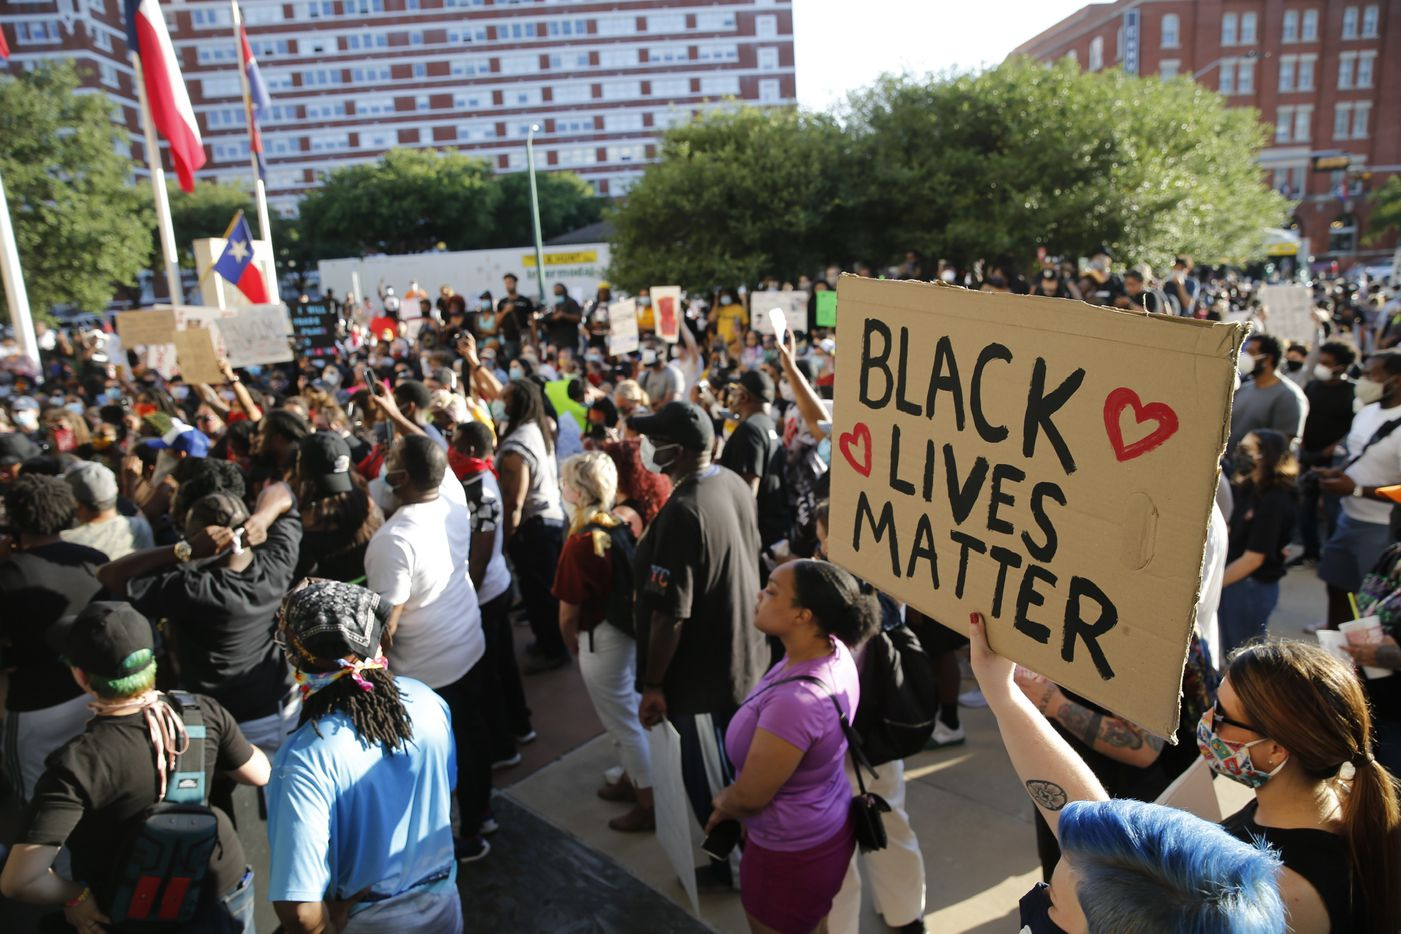 Protesters rally Friday during a demonstration against police brutality near downtown Dallas. The death of George Floyd police custody May 25 in Minneapolis has sparked protests nationwide.